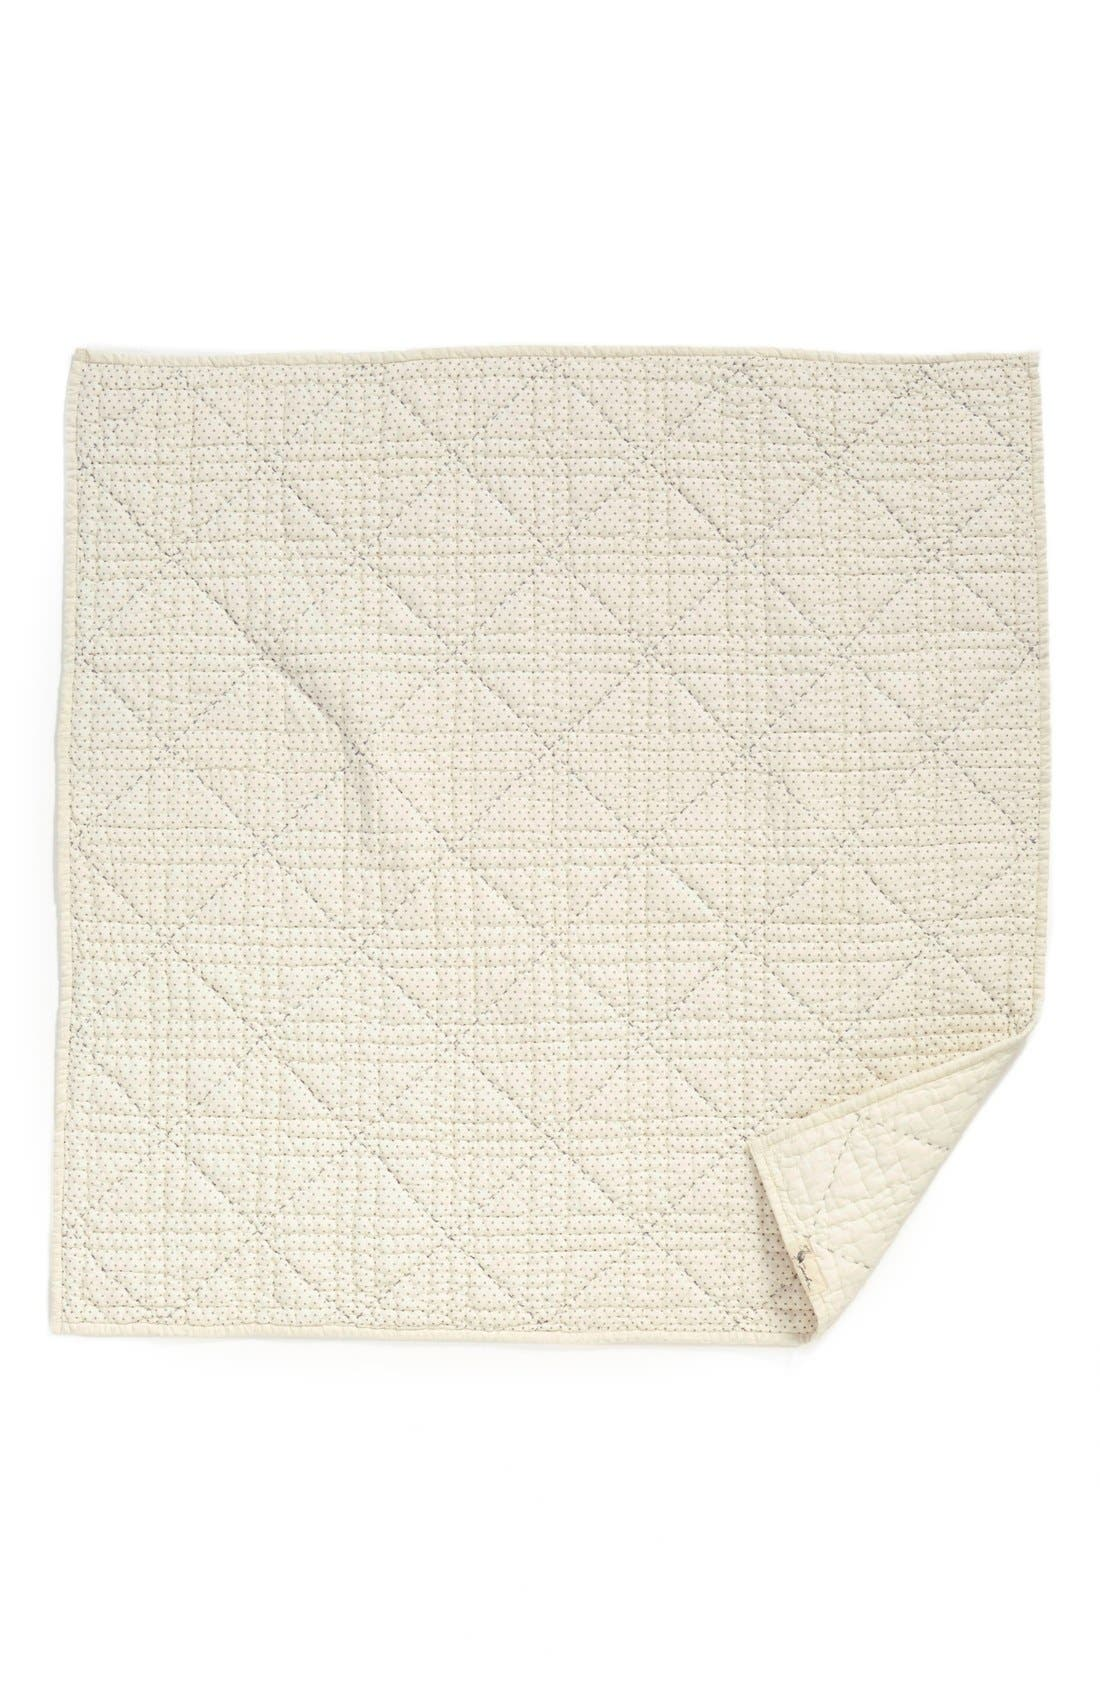 Stork Baby Blanket,                         Main,                         color, 020